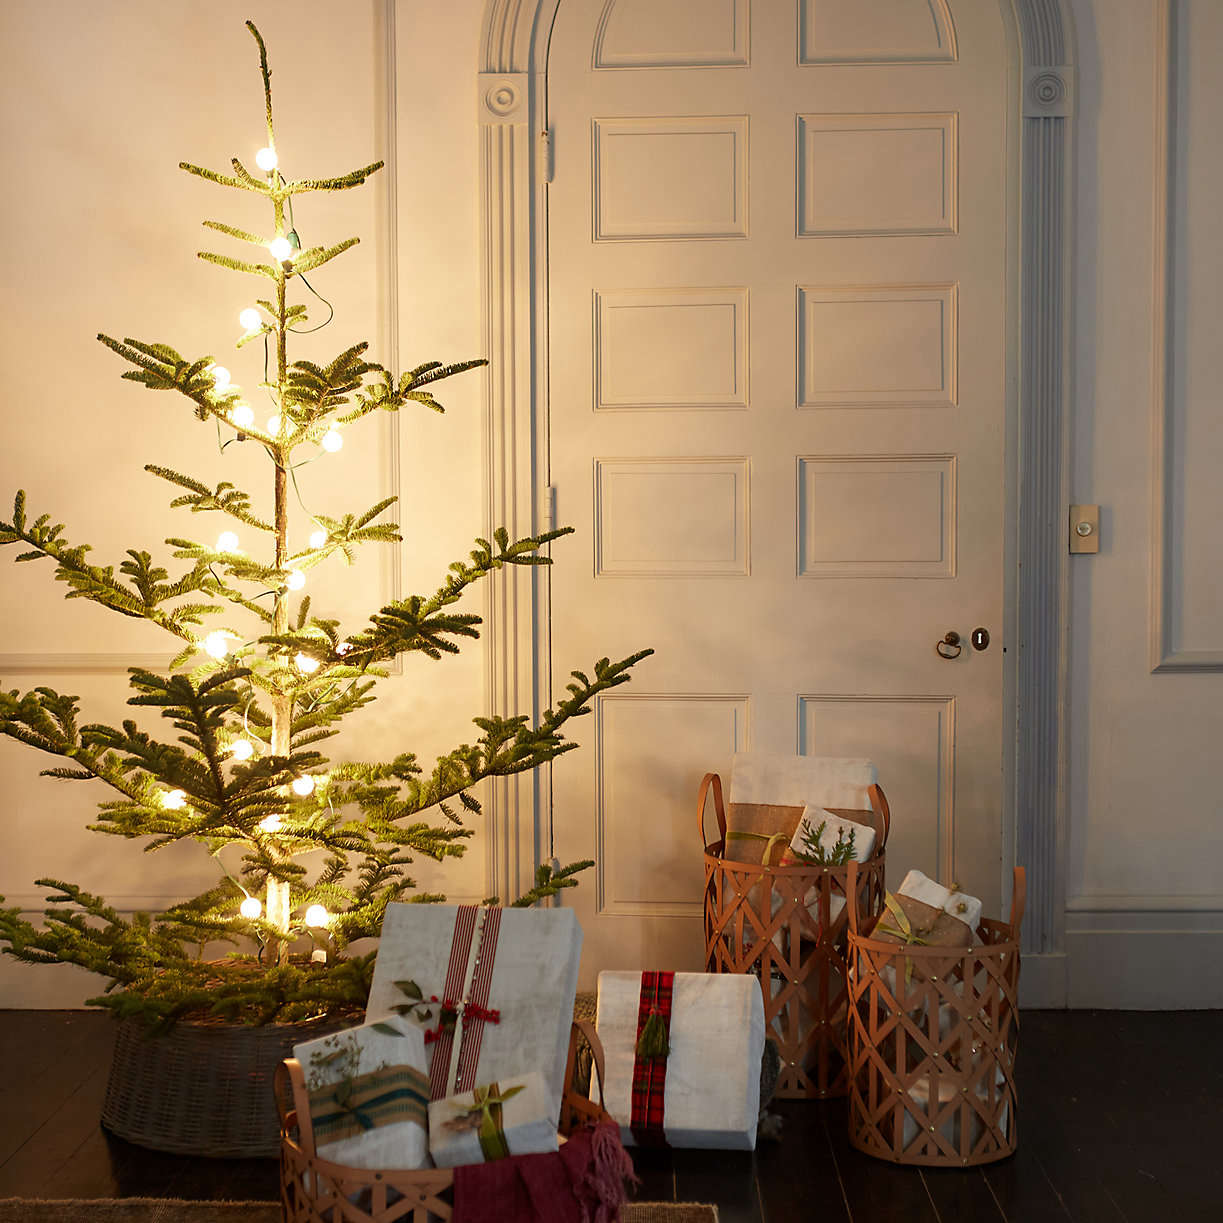 noble-fir-christmas-tree-with-gifts-leather-baskets-from-terrain